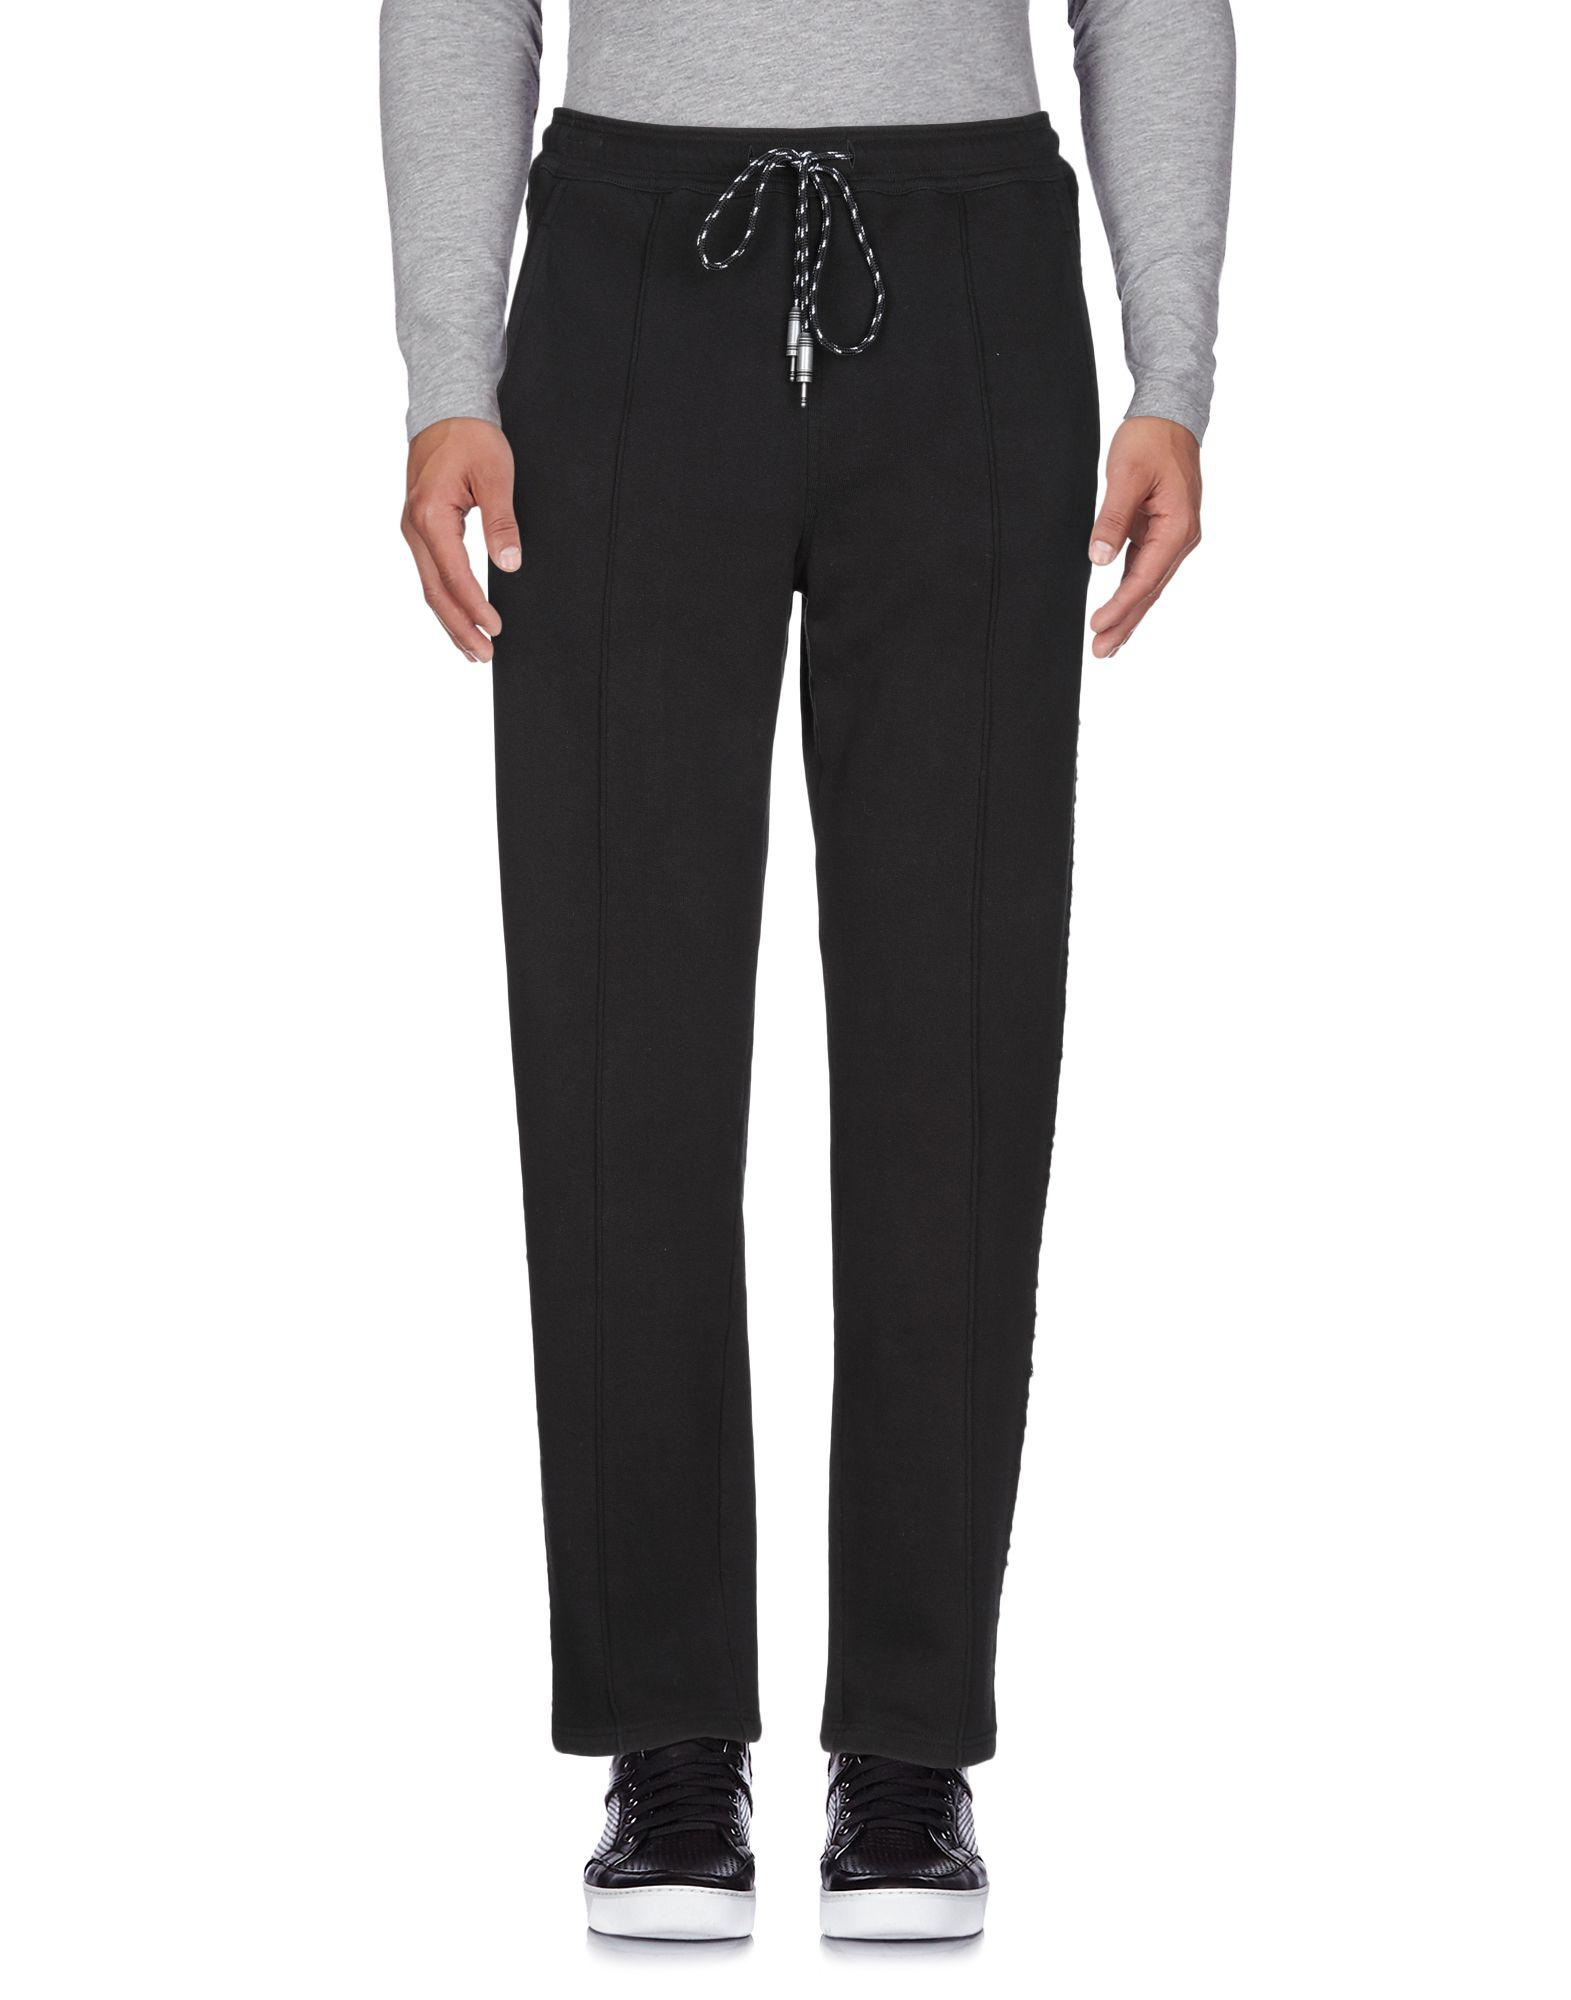 TROUSERS - Casual trousers Christian Dada Shop For For Sale Buy Cheap Get Authentic Huge Surprise Online Prices Cheap Price Sunshine EYanHIyddf